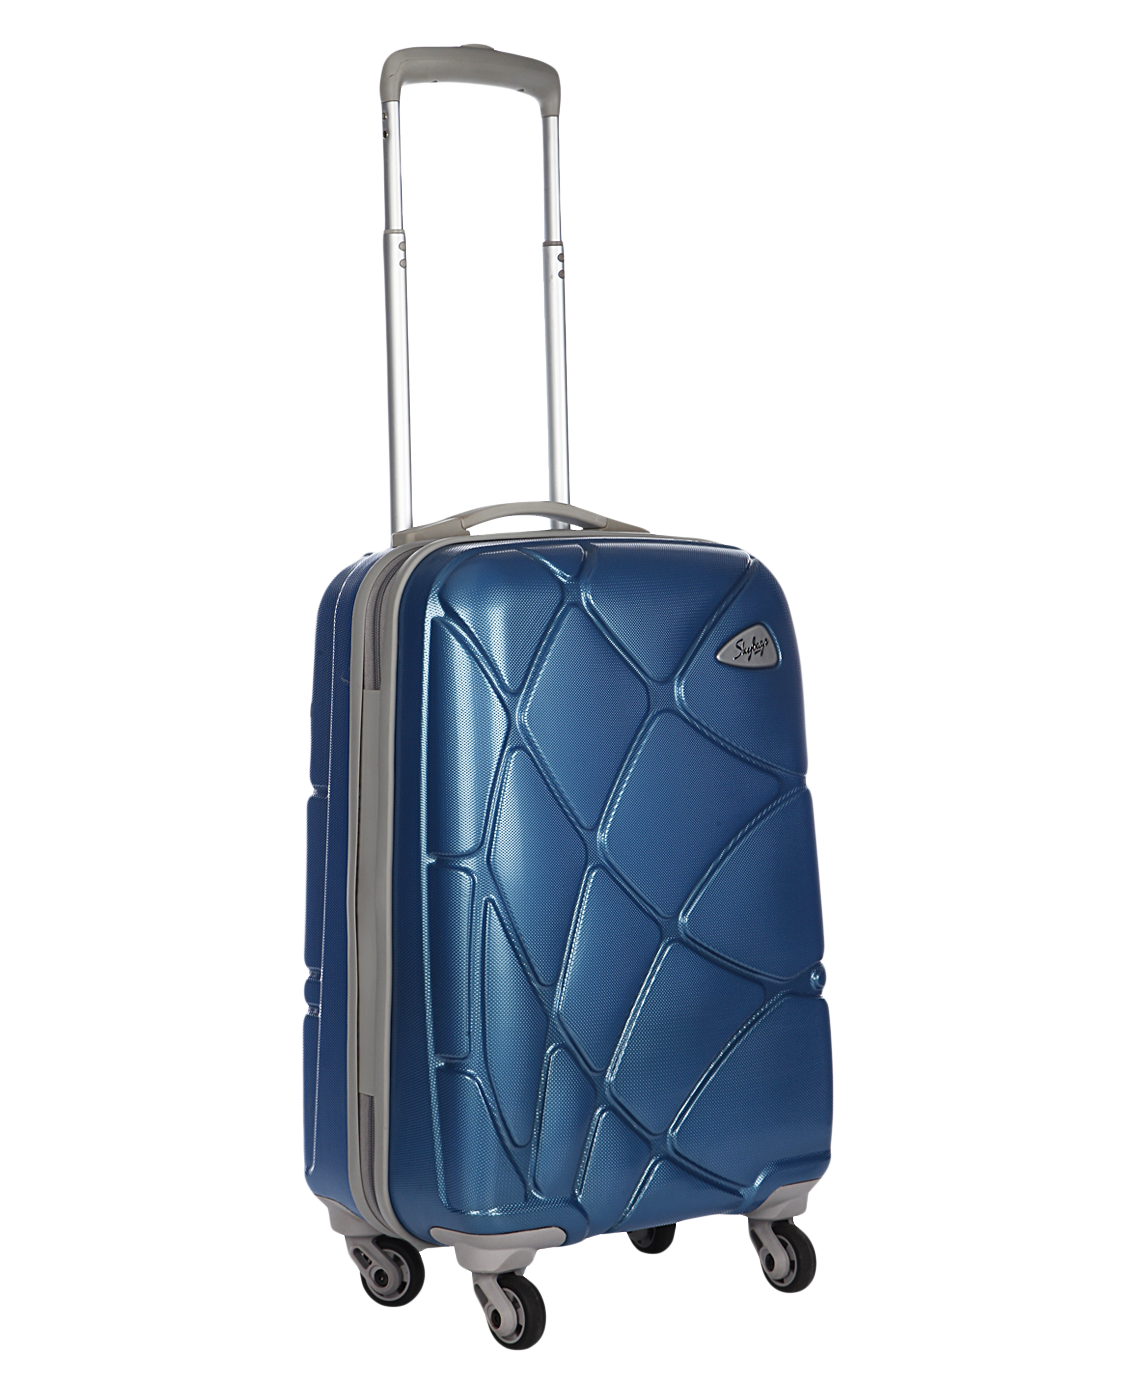 Strolley Suitcase Luggage PNG Image